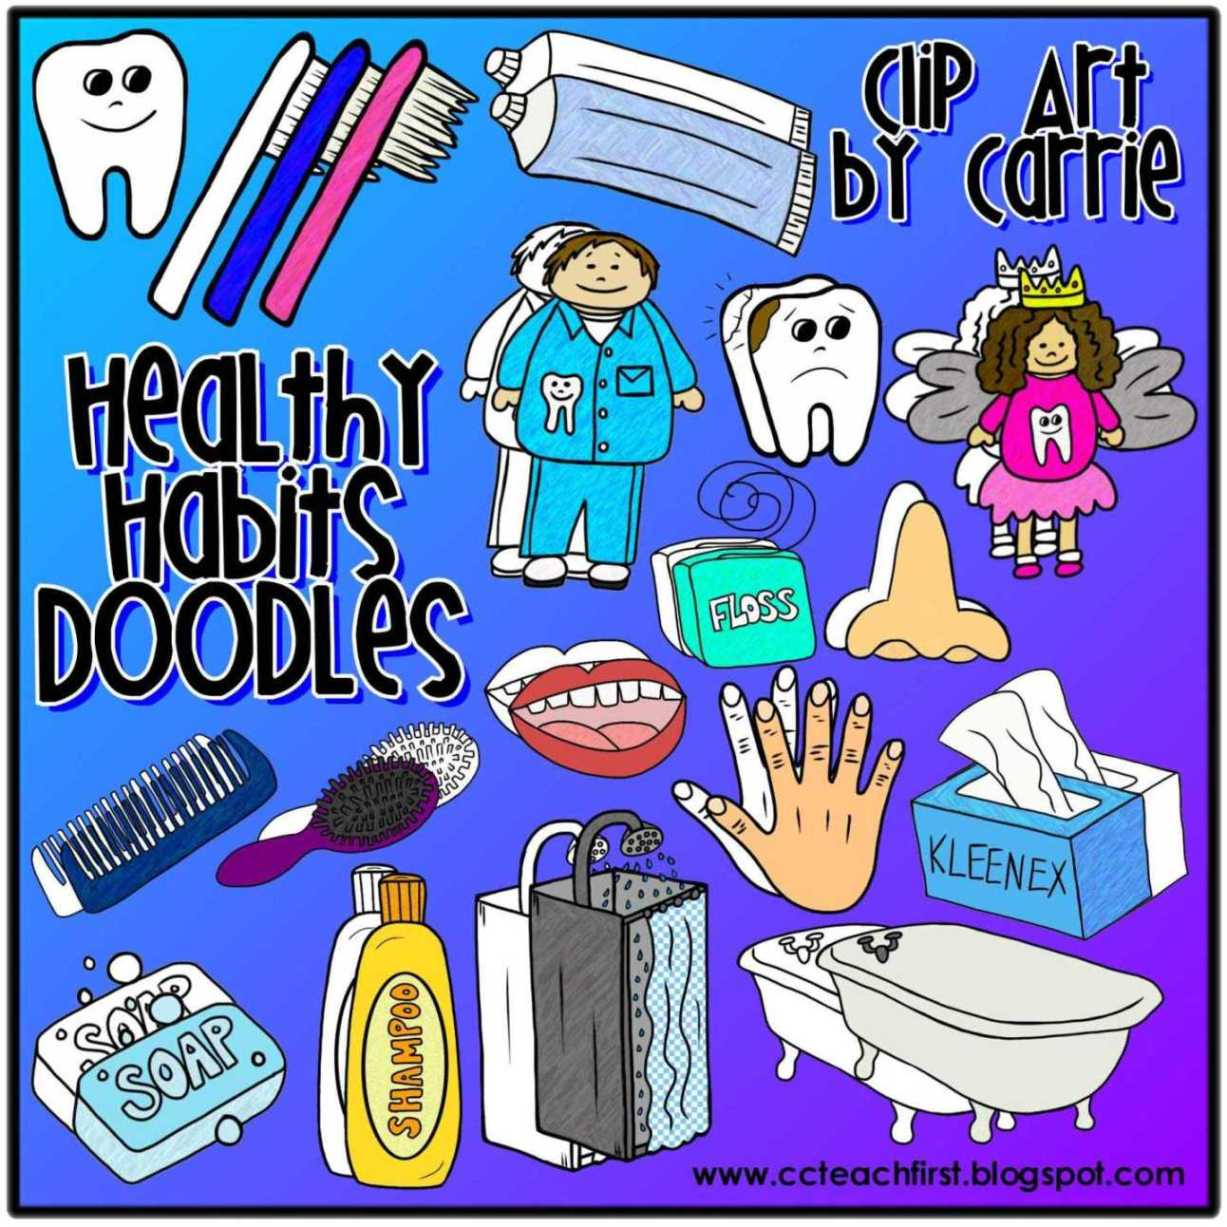 Clip Art By Carrie Teaching First Clip Art Doodles